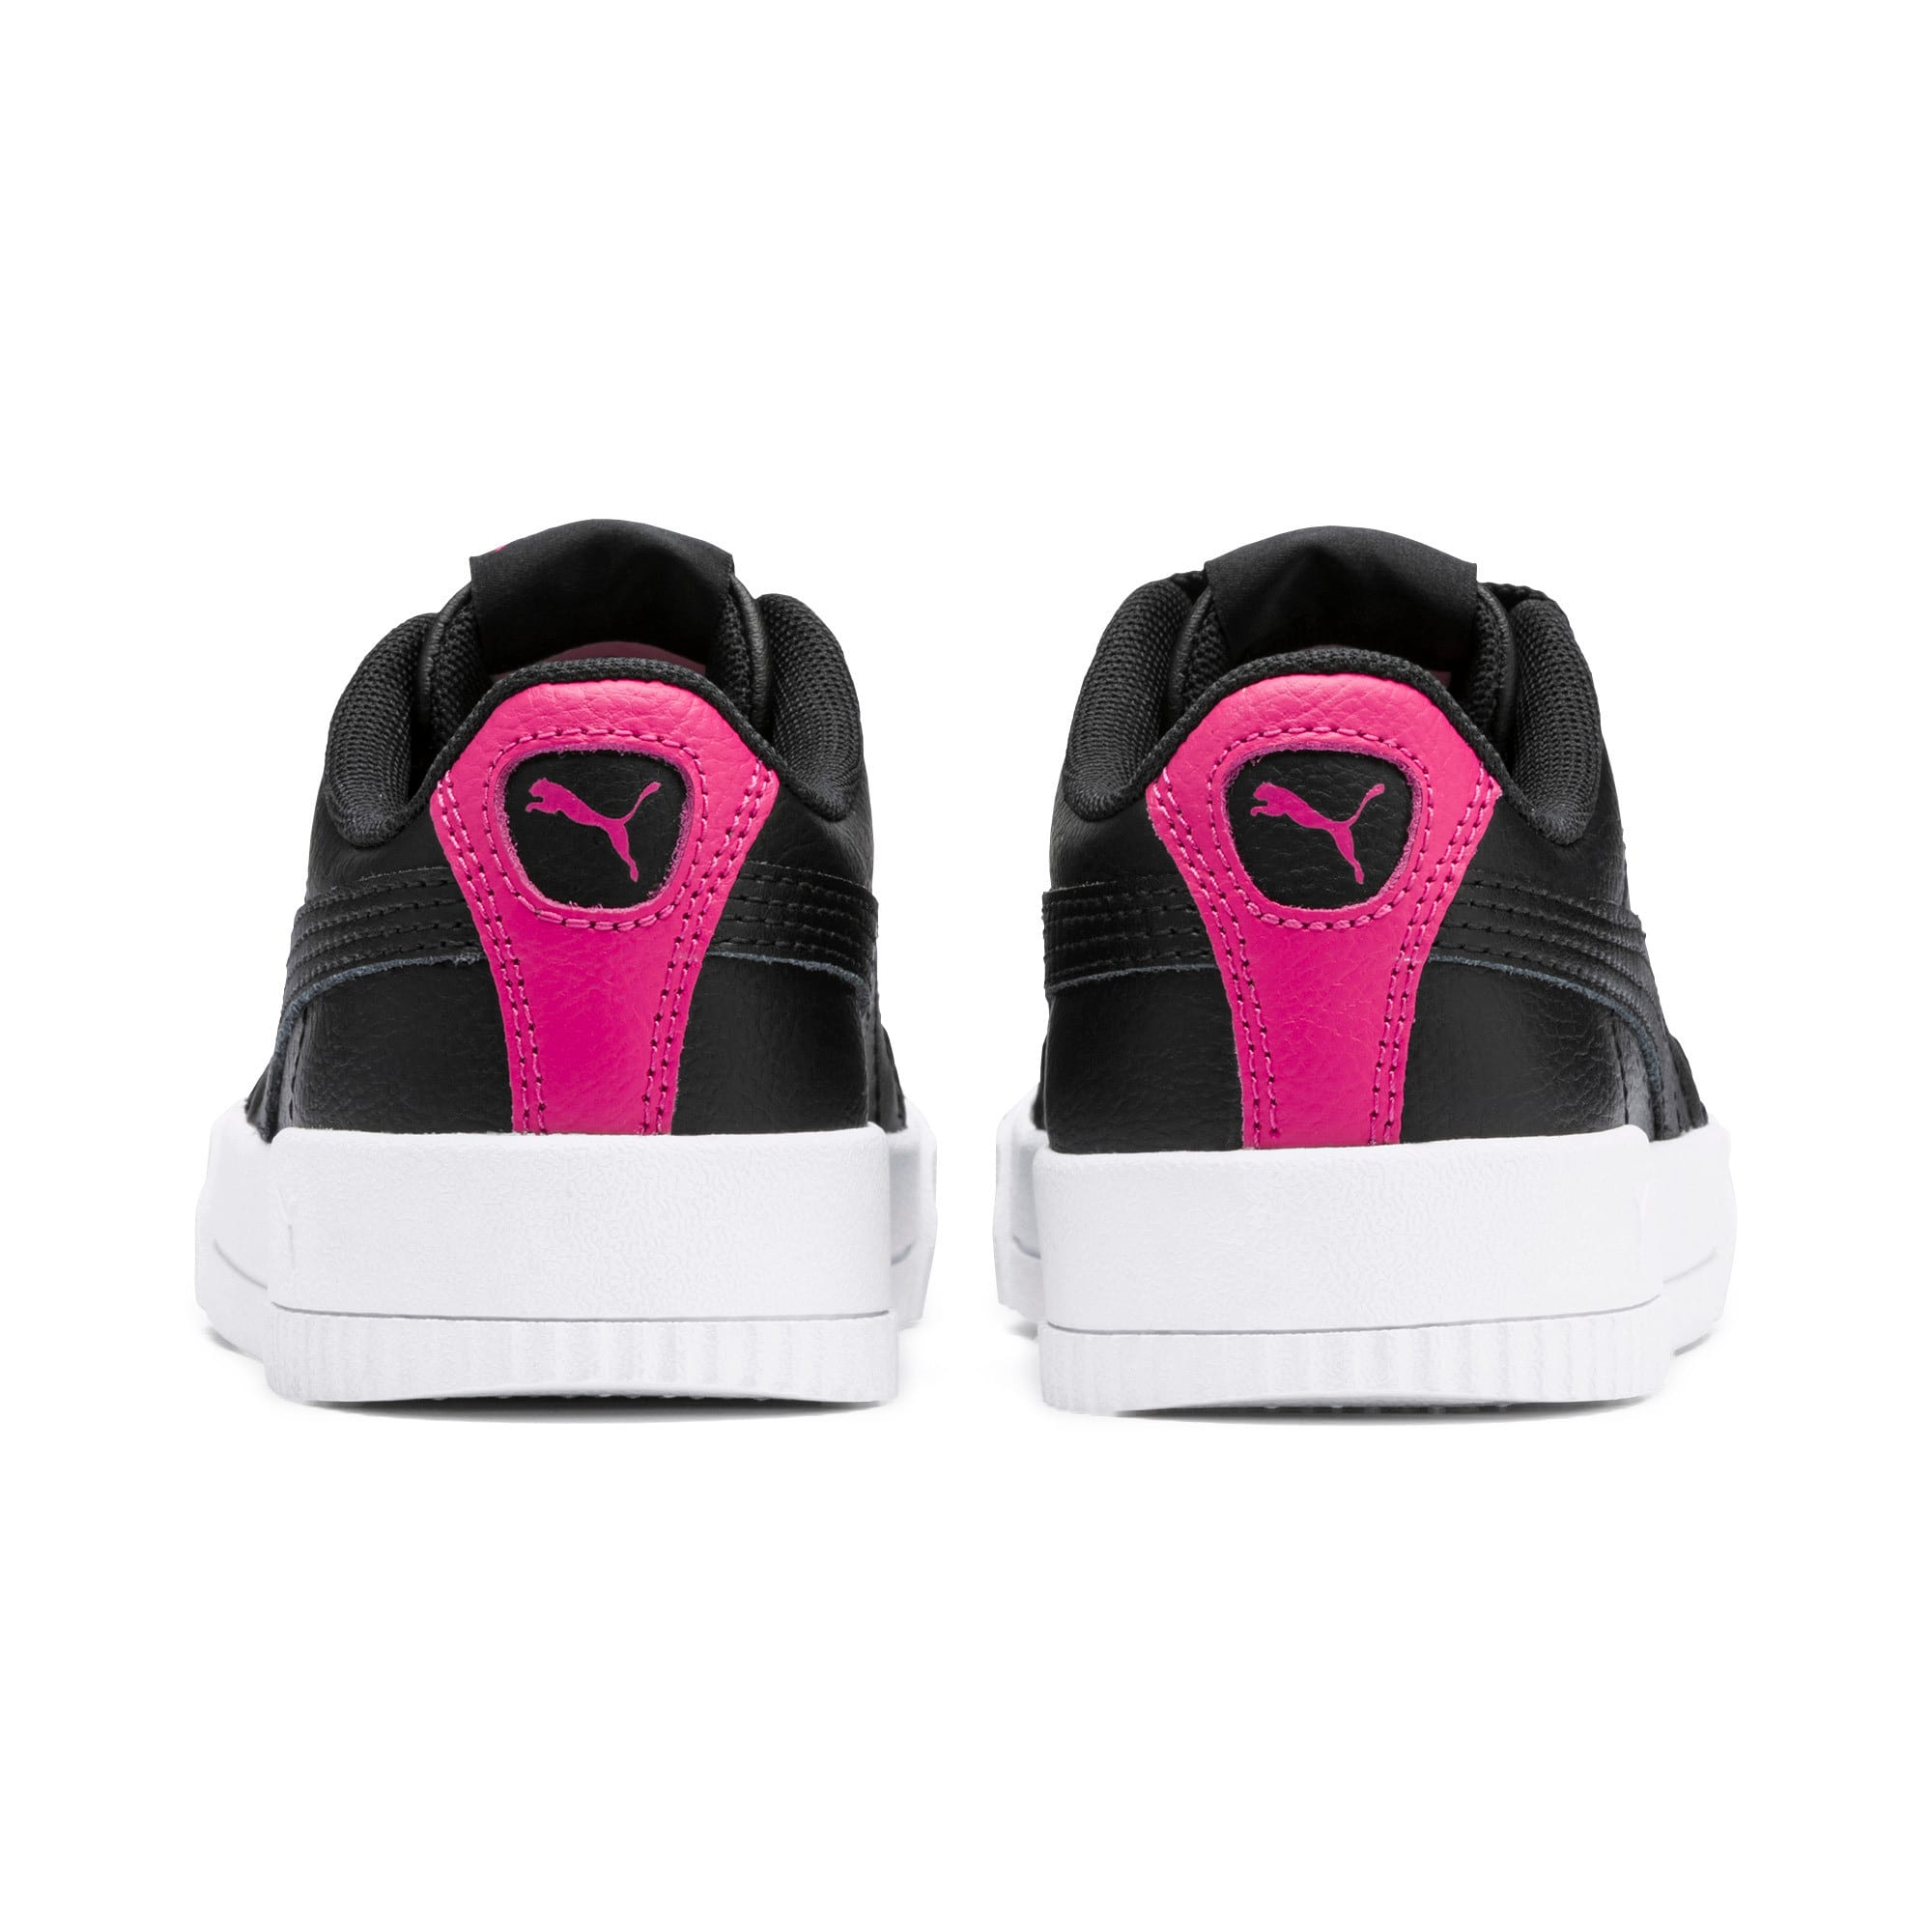 Thumbnail 3 of Carina L Kids' Trainers, Puma Black-Puma Black, medium